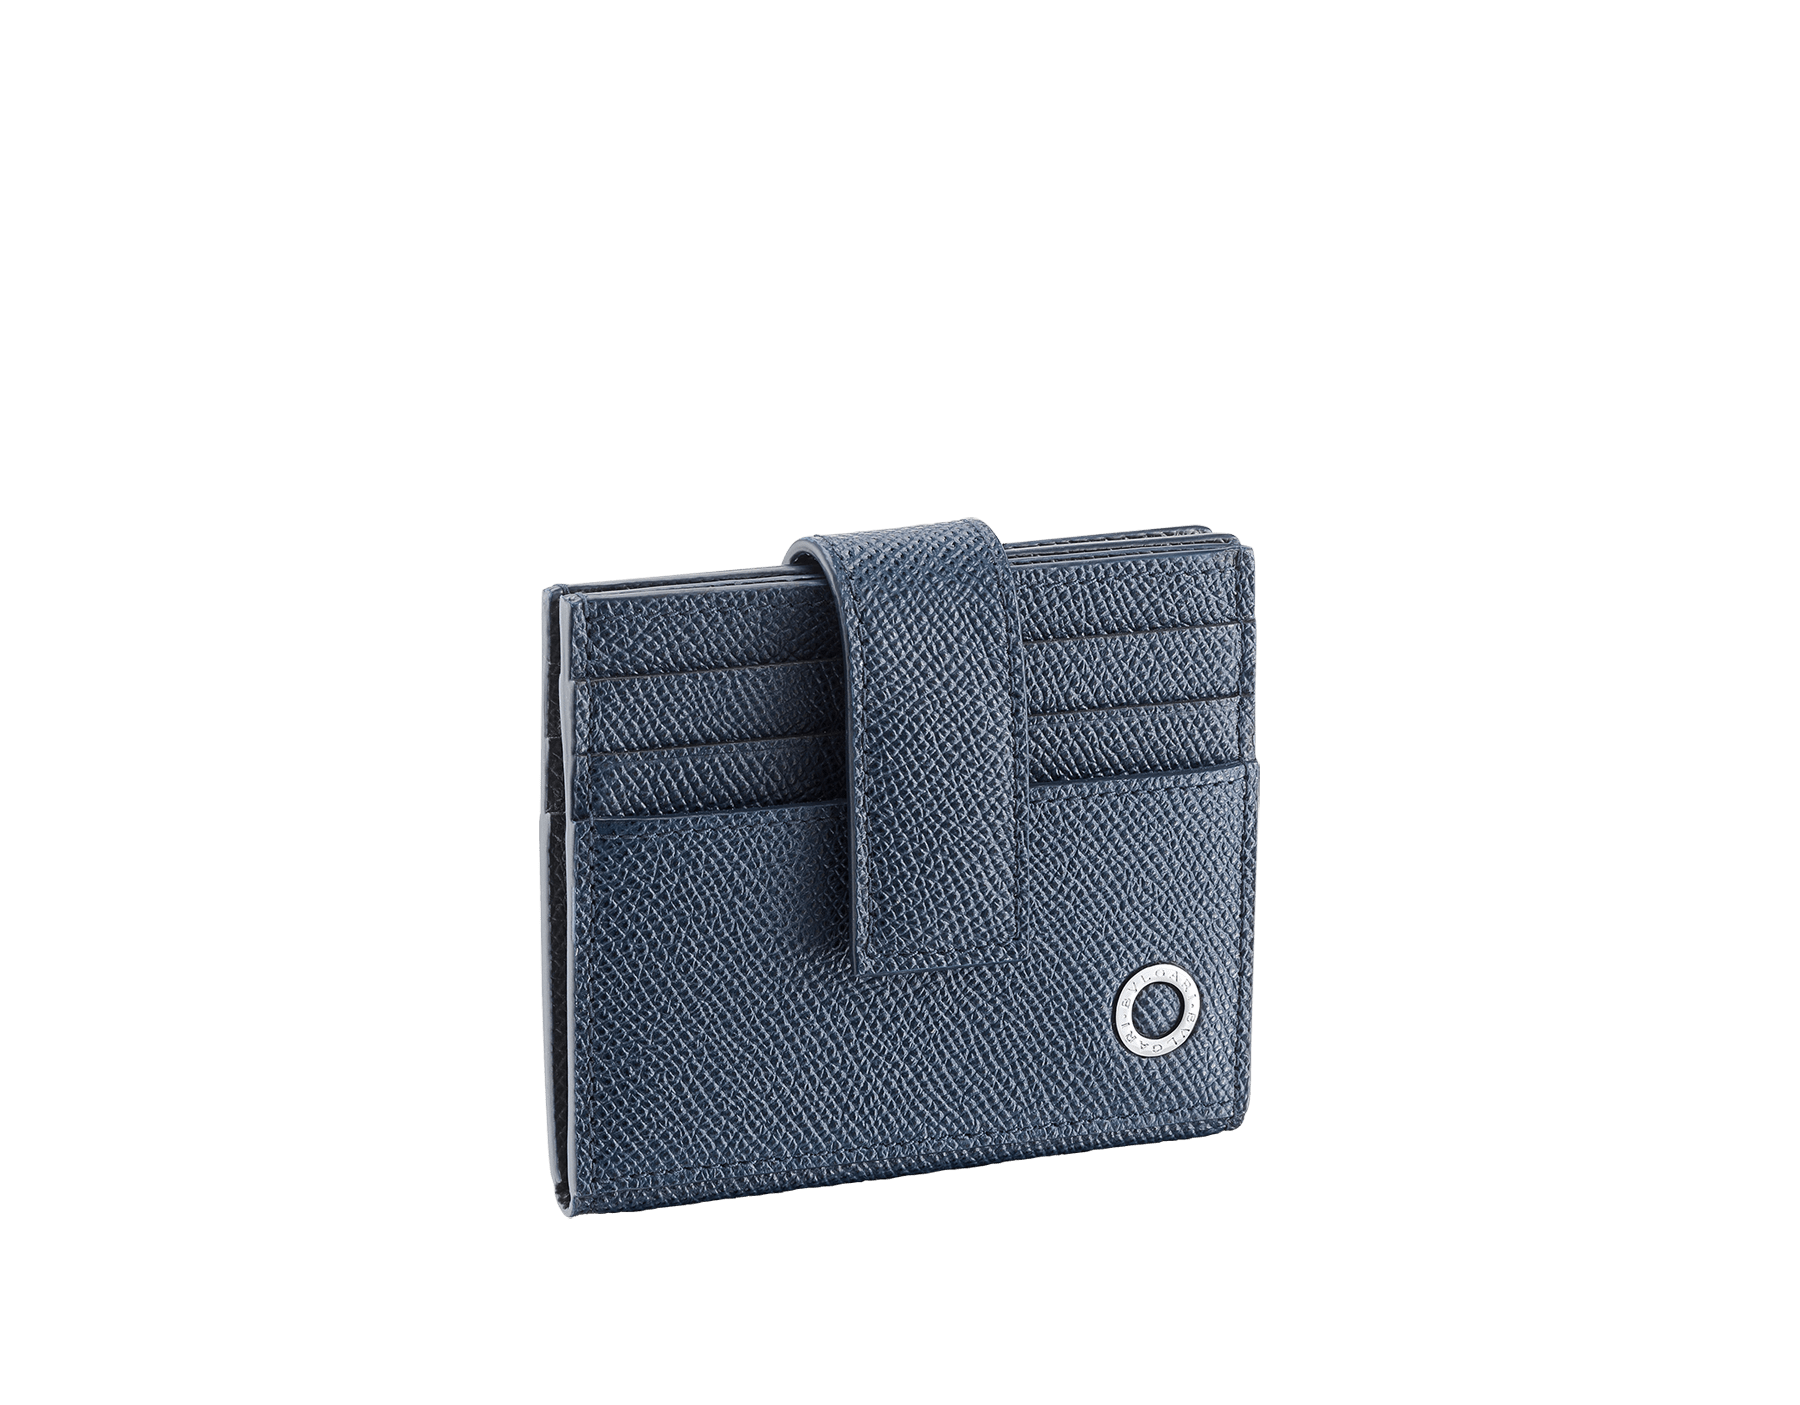 BVLGARI BVLGARI folded credit card holder in denim sapphire and charcoal diamond grain calf leather. Iconic logo decoration in palladium-plated brass. 289235 image 1